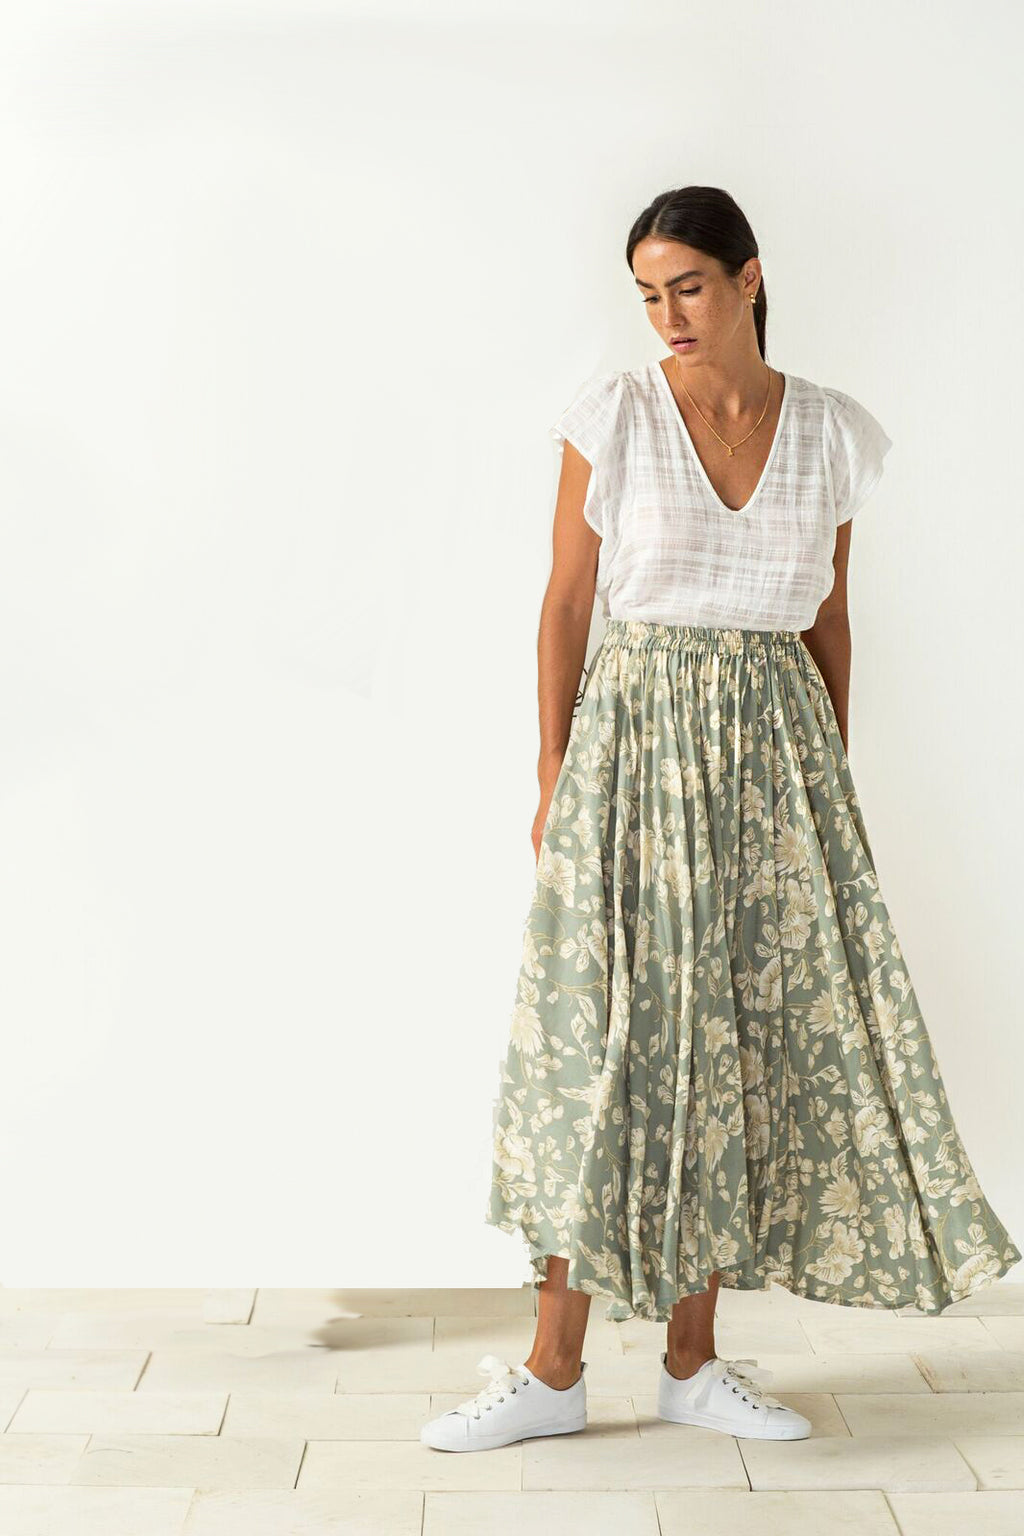 Buy Alela Skirt from BIRD AND KITE at PAYA boutique